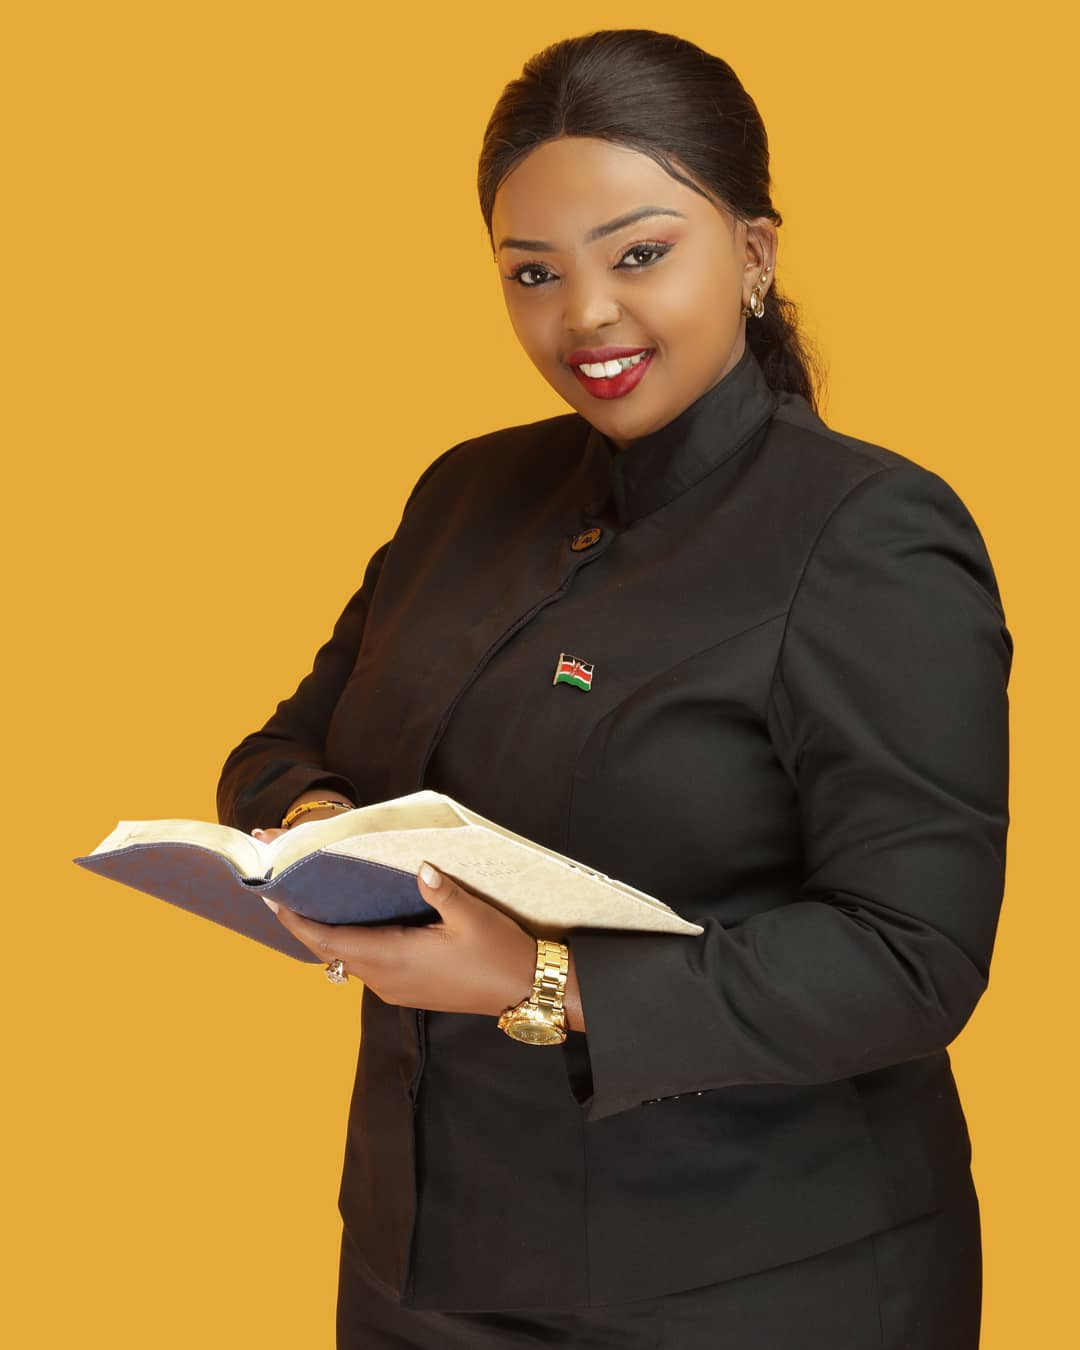 Reverend Lucy Natasha - Who is the most attractive female celebrity in Kenya?(poll)